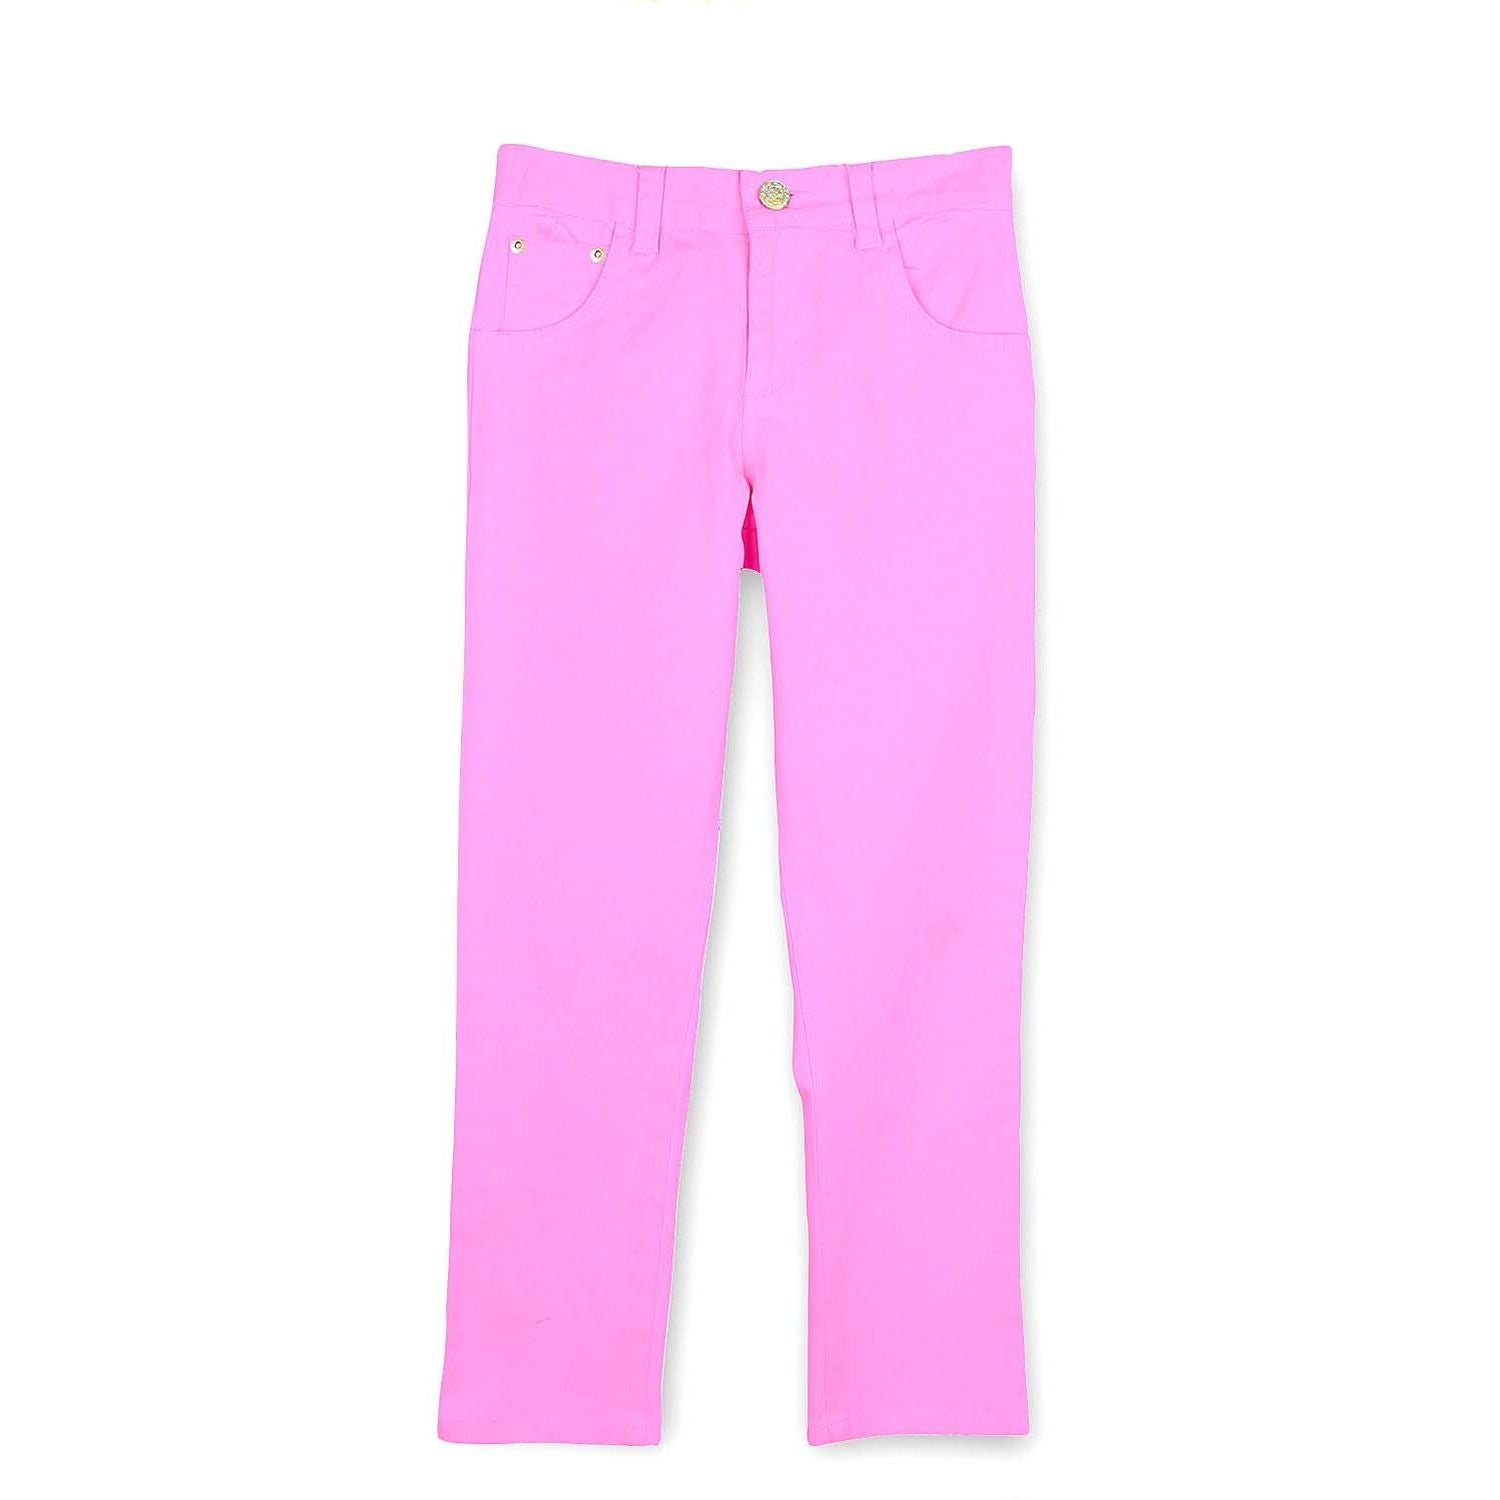 Cotton Twill Trousers for Boys